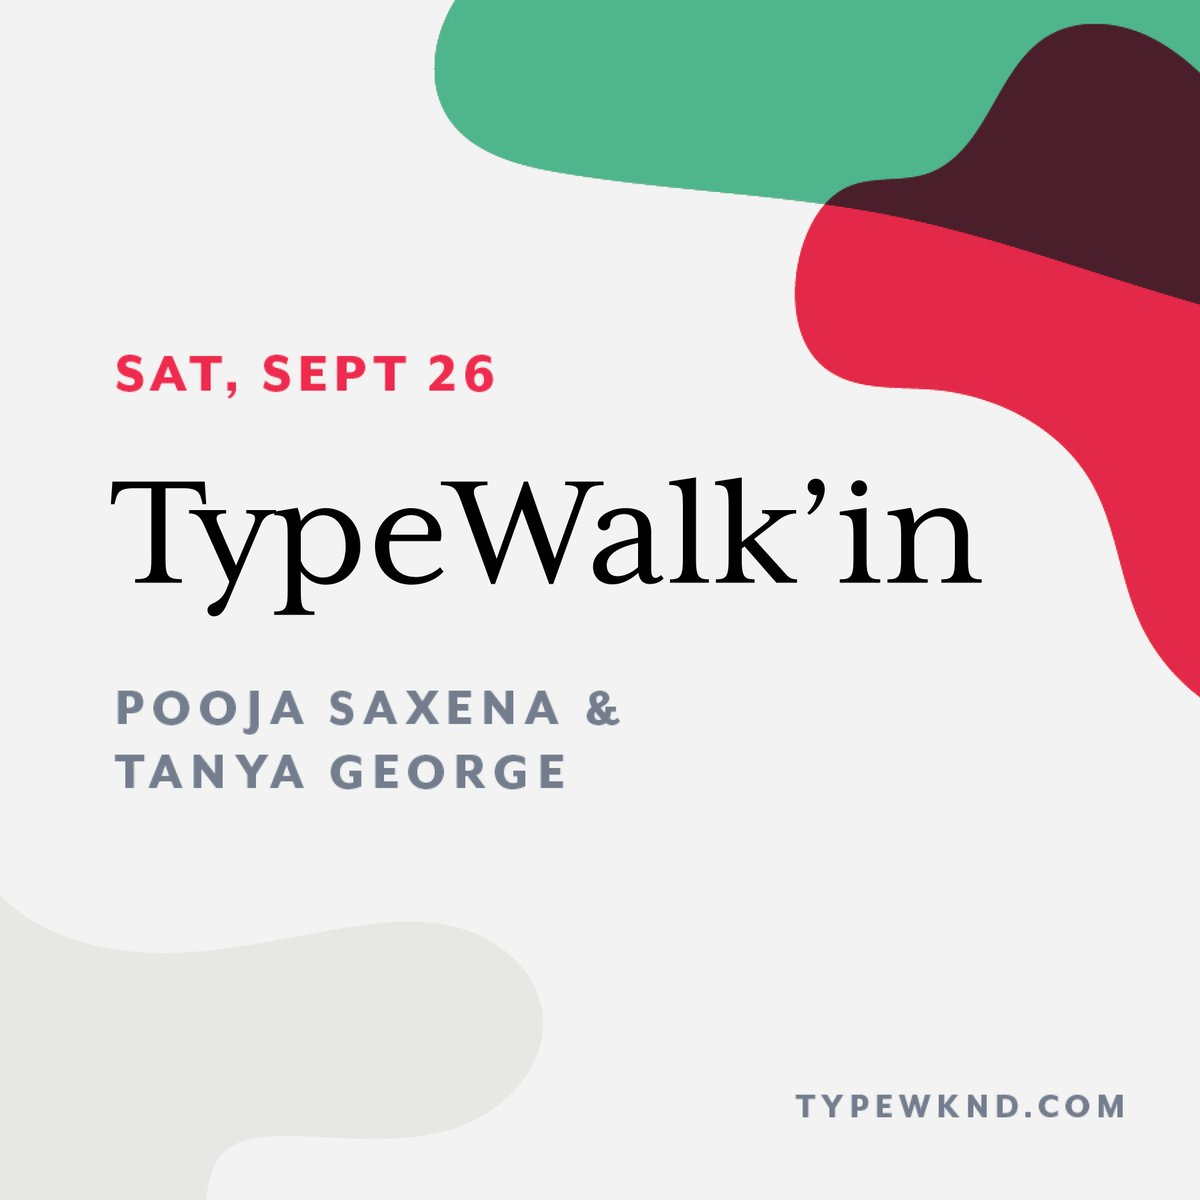 Pooja Saxena On Twitter Type Walks Are Much More Than Sign Spotting For Me And Tanyatypes At Typewknd We Ll Talk About The Stories We Like To Tell Through Type And Lettering How